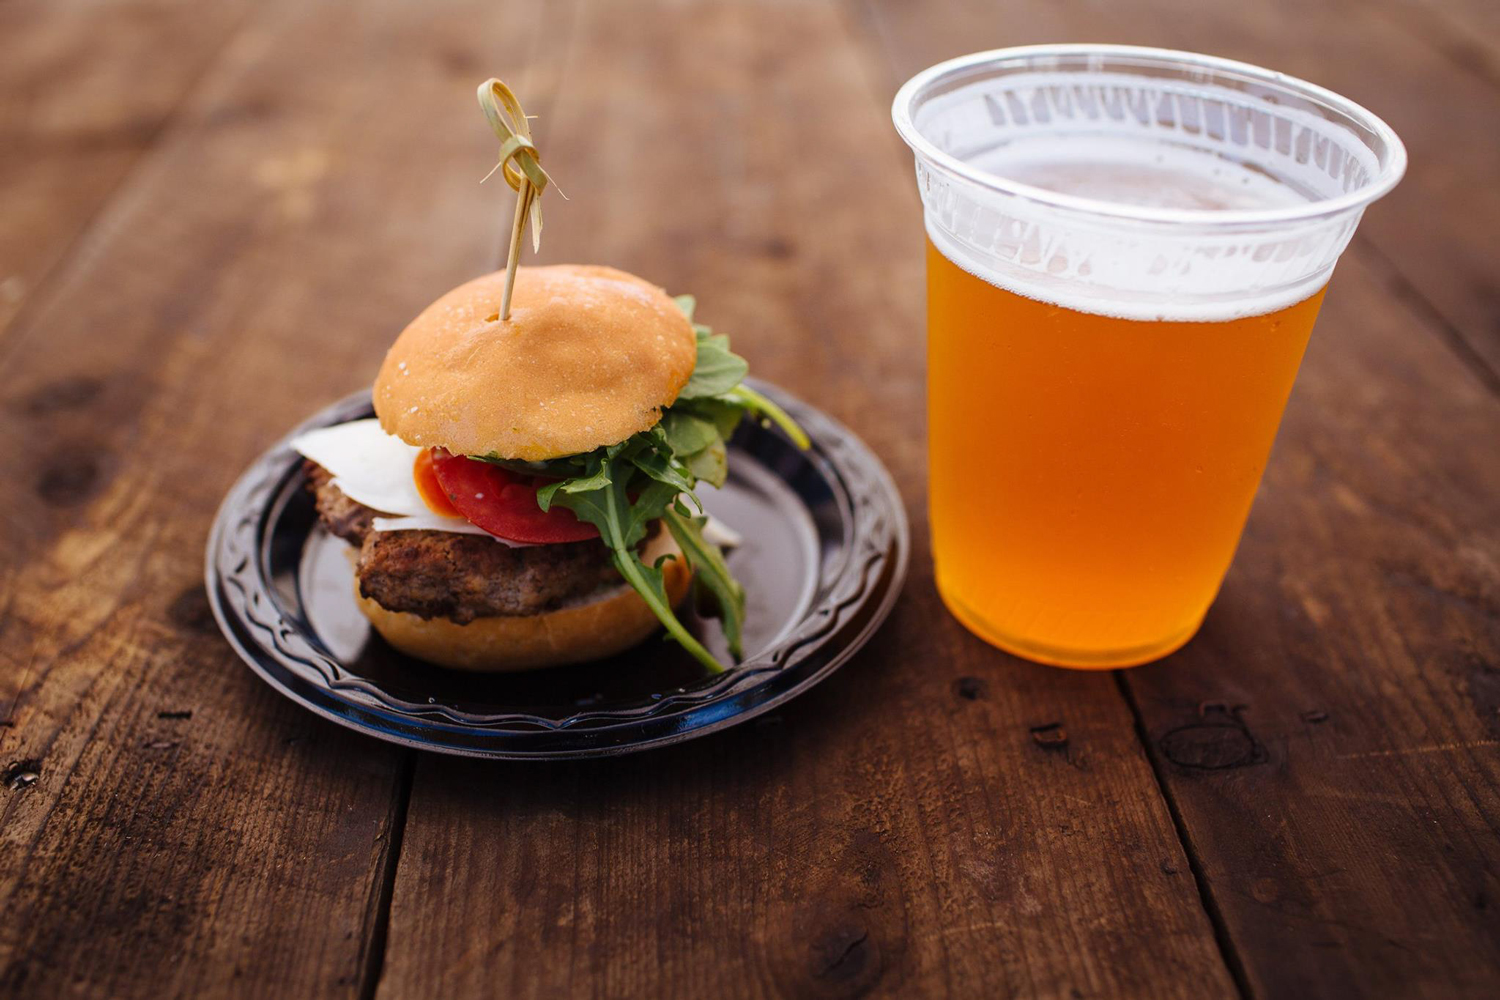 Burgers-and-Beer-Best-Of-Photos-for-Web-(16-of-25).jpg